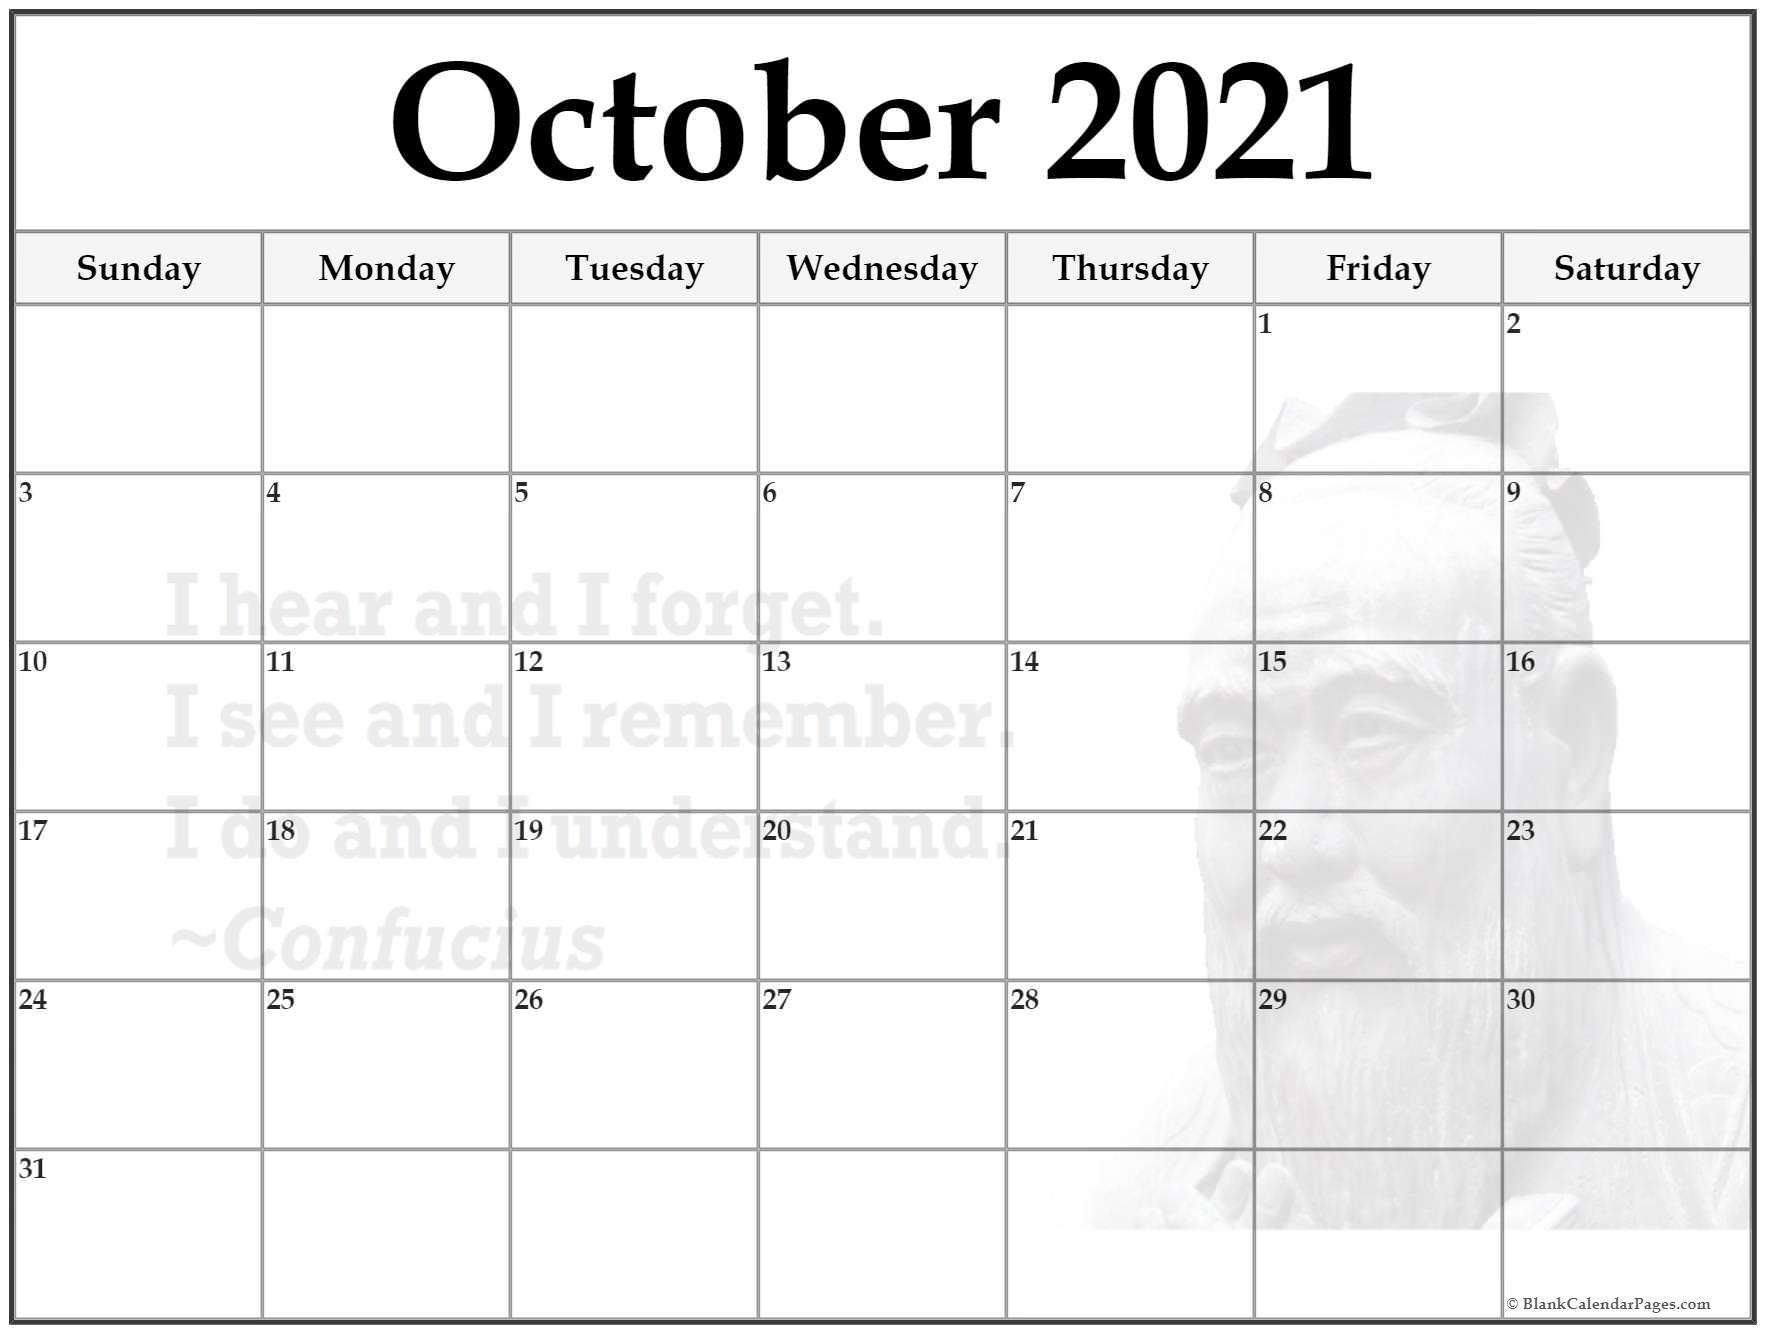 October 2018 monthly calendar template. I hear and I forget.I see and I remember.I do and I understand.~Confucius